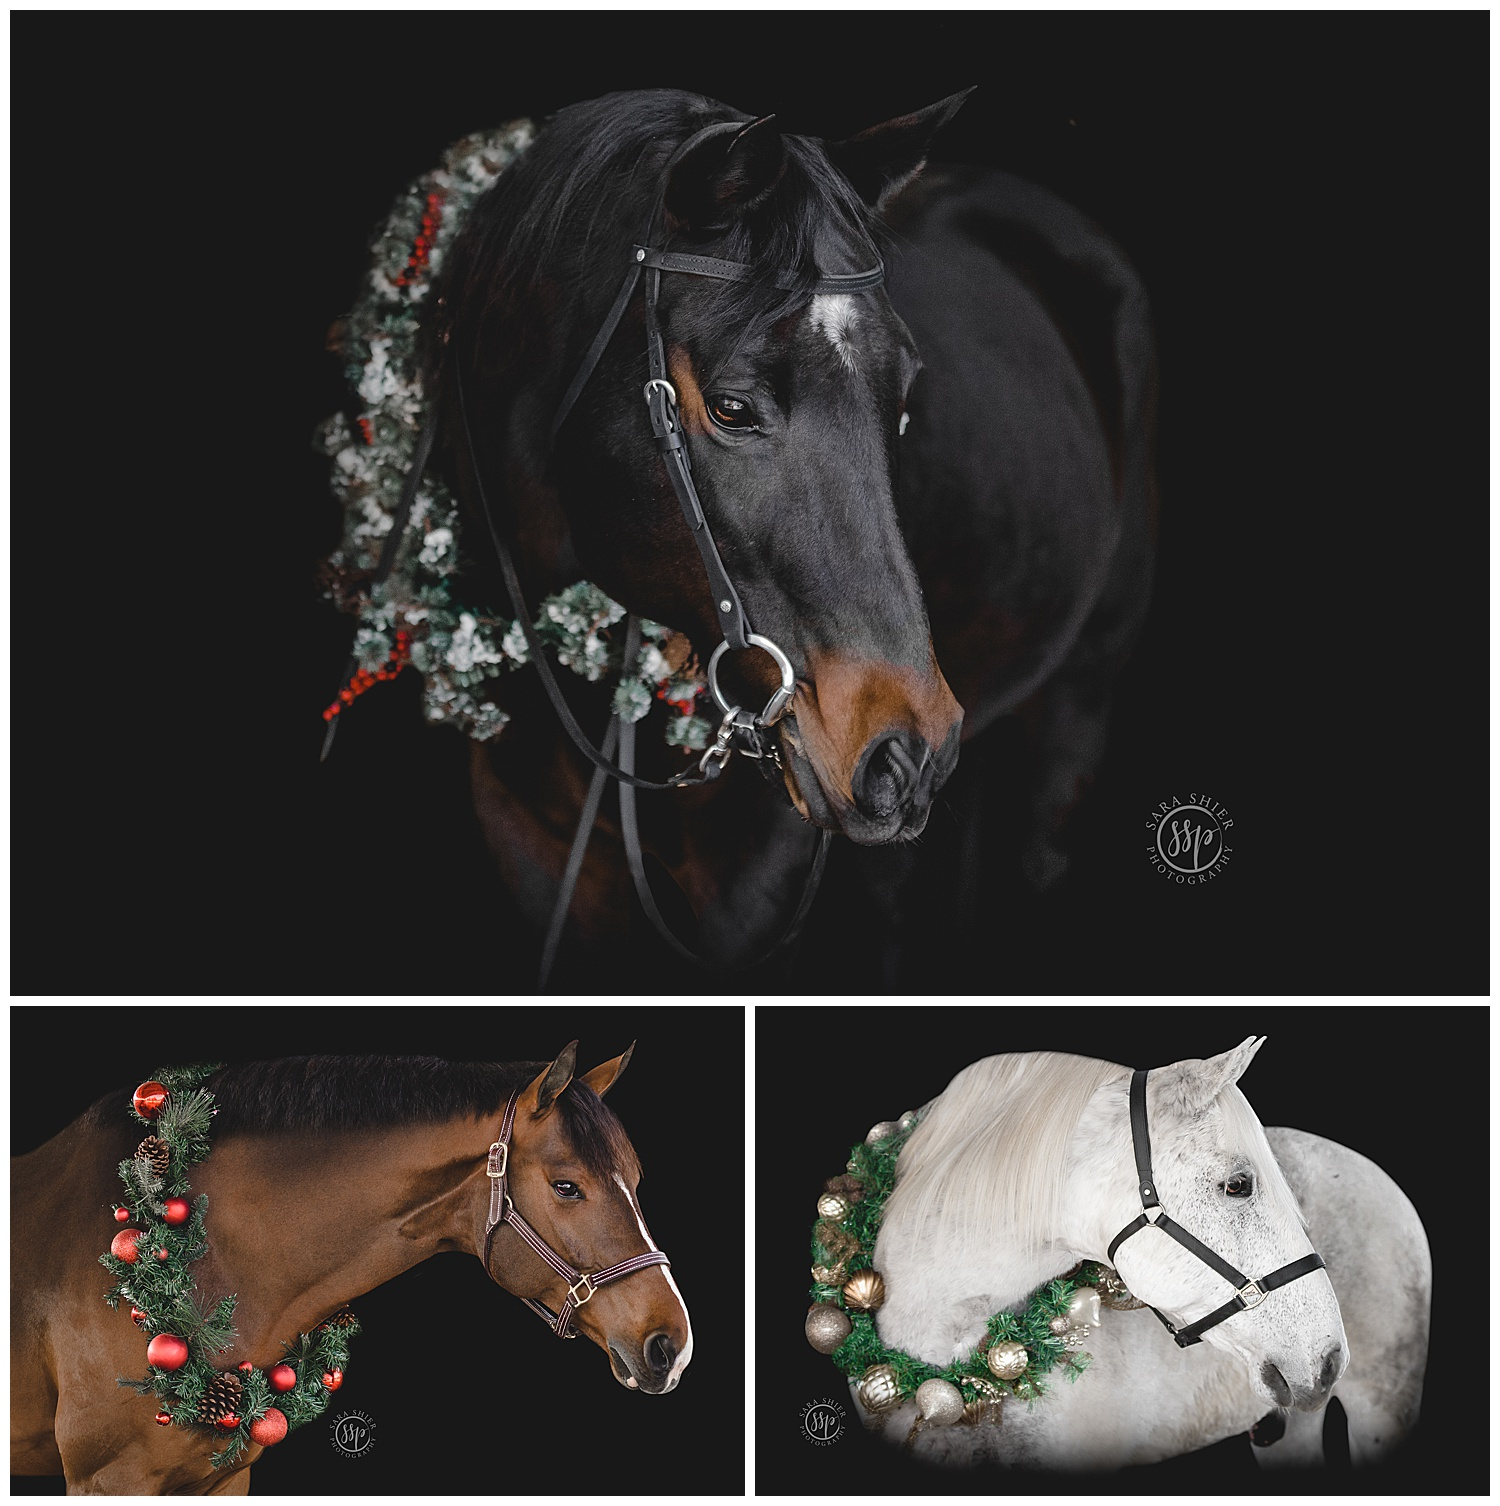 Black Background Horse Rider Equine Photographer Southern California Sara Shier Photography SoCal Equestrian Cowgirl_0169.jpg